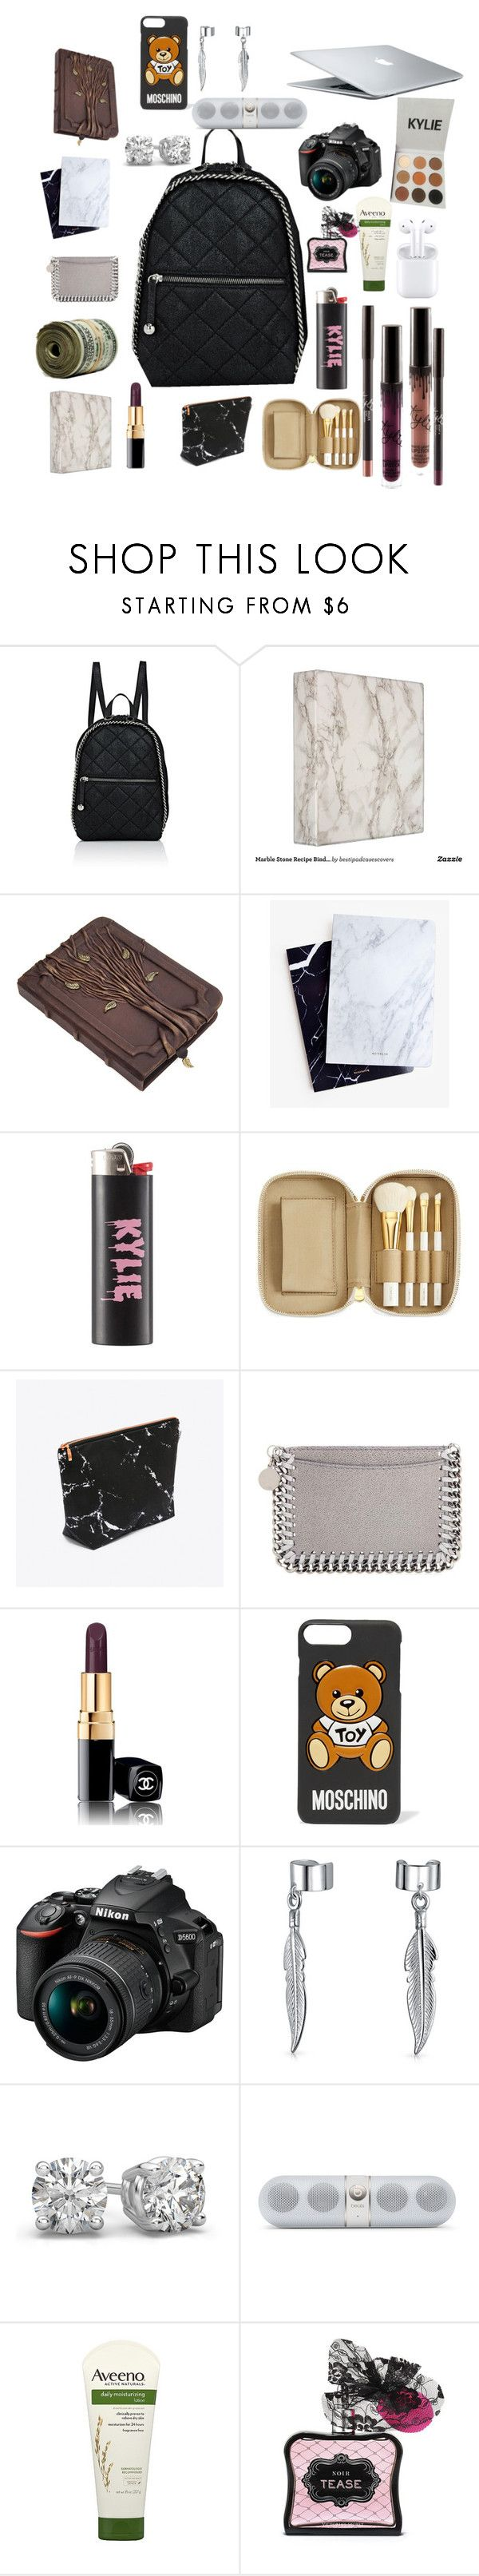 """what's in my bag"" by yeah-dhat-shay on Polyvore featuring STELLA McCARTNEY, Dear Maison, Kylie Cosmetics, Tom Ford, MAC Cosmetics, Chanel, Moschino, Nikon, Bling Jewelry and Aveeno"